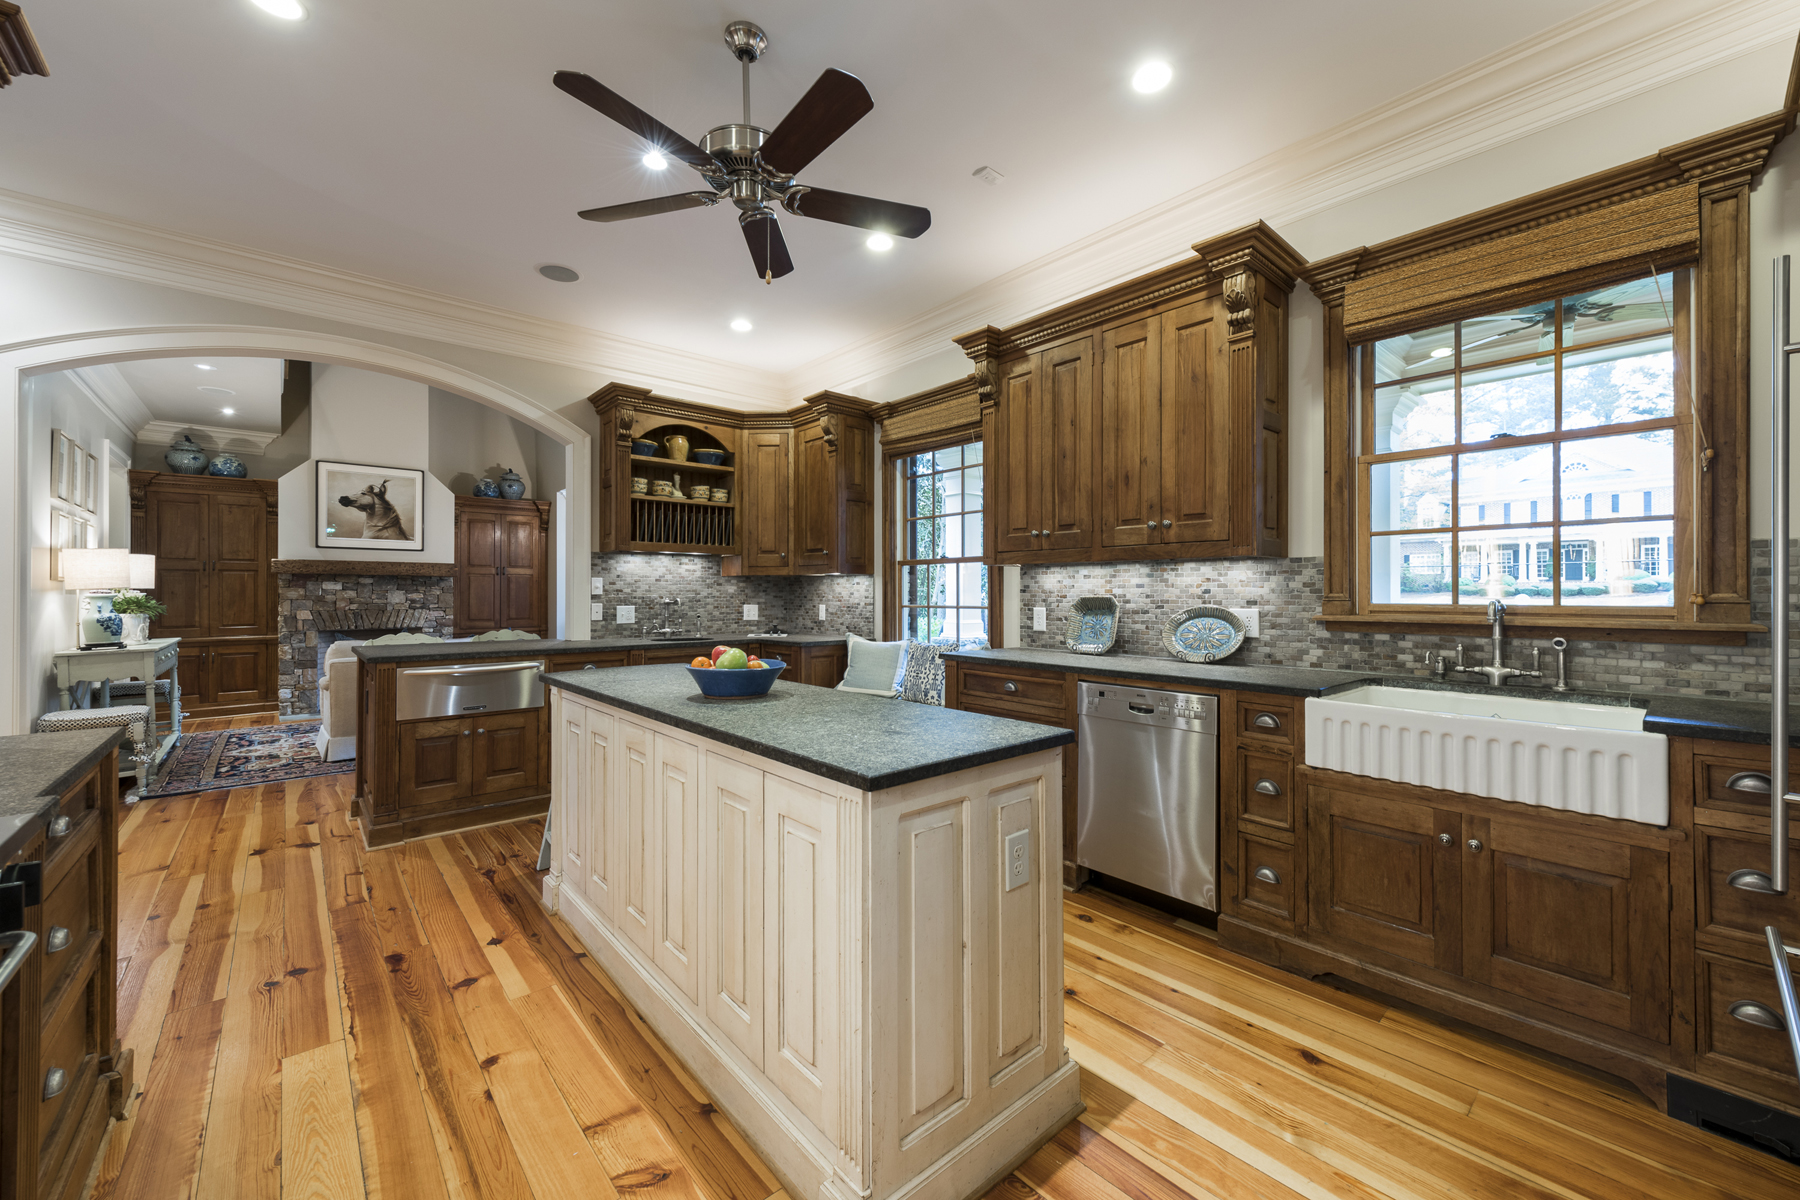 Additional photo for property listing at Beautiful Total Renovation On Quiet Cul-de-sac Street In Historic Brookhaven 4500 Club Valley Drive NE Atlanta, Geórgia 30319 Estados Unidos